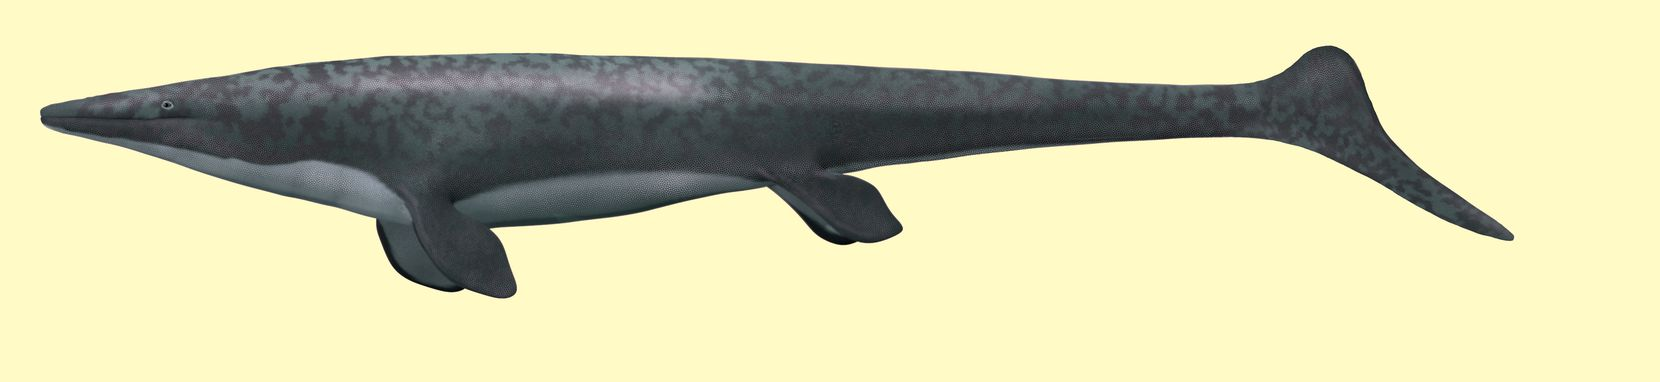 An artist's' rendering of what this mosasaur, Angolasaurus bocagei, might have looked like while it was alive. This species, Angolasaurus bocagei, is among the oldest known mosasaur from the Southern Hemisphere and the earliest native species of mosasaur from Angola. It descended from North American and European species that first arrived along Angola''s coast a little over 88 million years ago. A powerful swimmer, it grew up to 13 feet (4 meters) long. Its cone-shaped, curved teeth suggest it hunted fish along Angola''s narrow continental shelf.